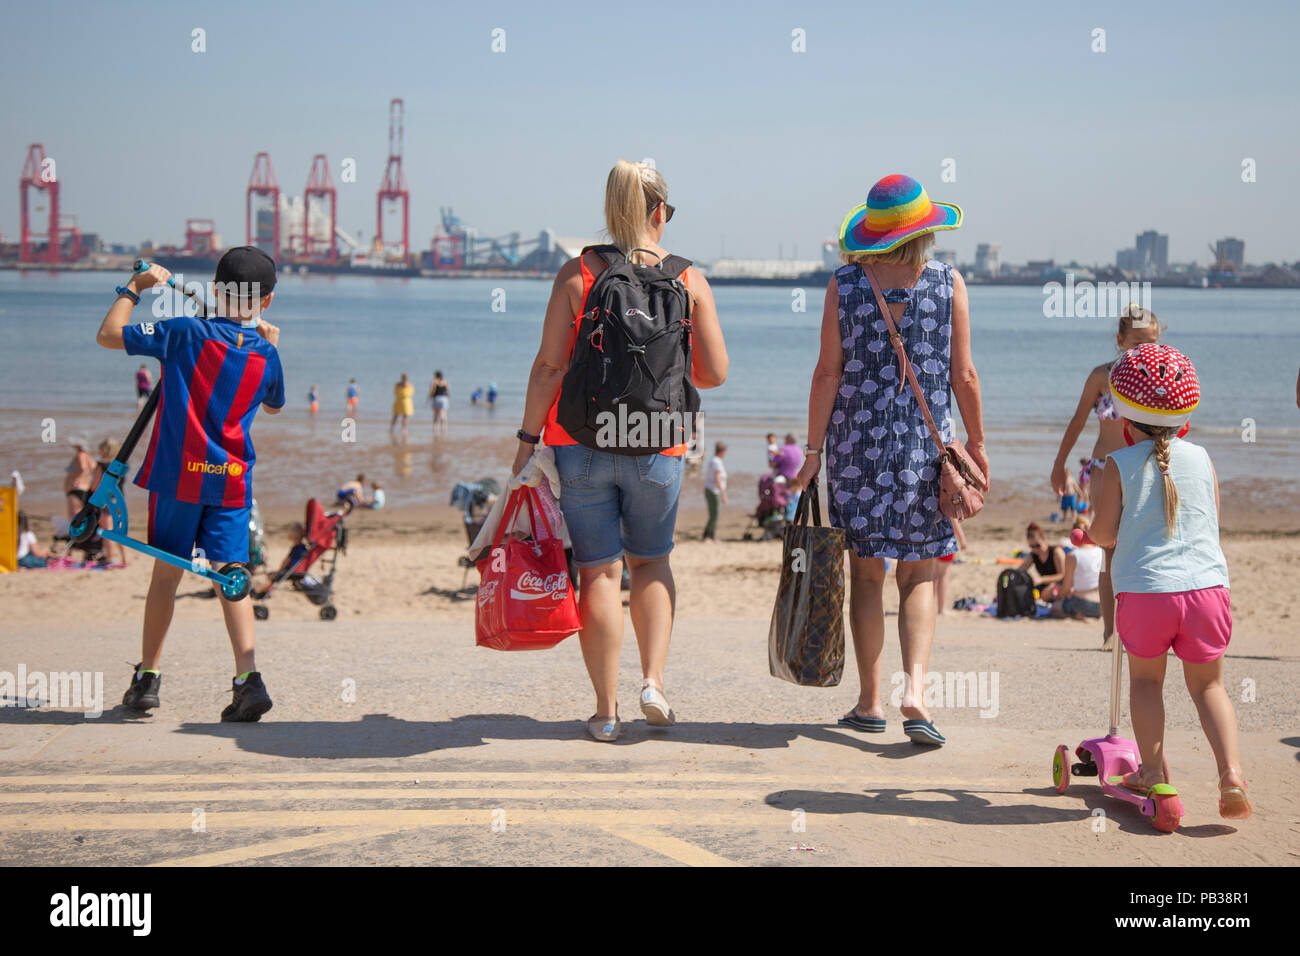 New Brighton, Wallasey.  UK Weather. 26/07/2018.  Crowds enjoy the summer sunshine in Seaside Resort Located on the Wallasey Coastline in the Wirral Peninsula. The development of New Brighton has been an undoubted success that is the jewel in the crown of Wirral's regeneration to date and is now a popular destination with throngs of visitors enjoying the beach particularly during the summer months. Credit: MediaWorldImages/AlamyLiveNews - Stock Image